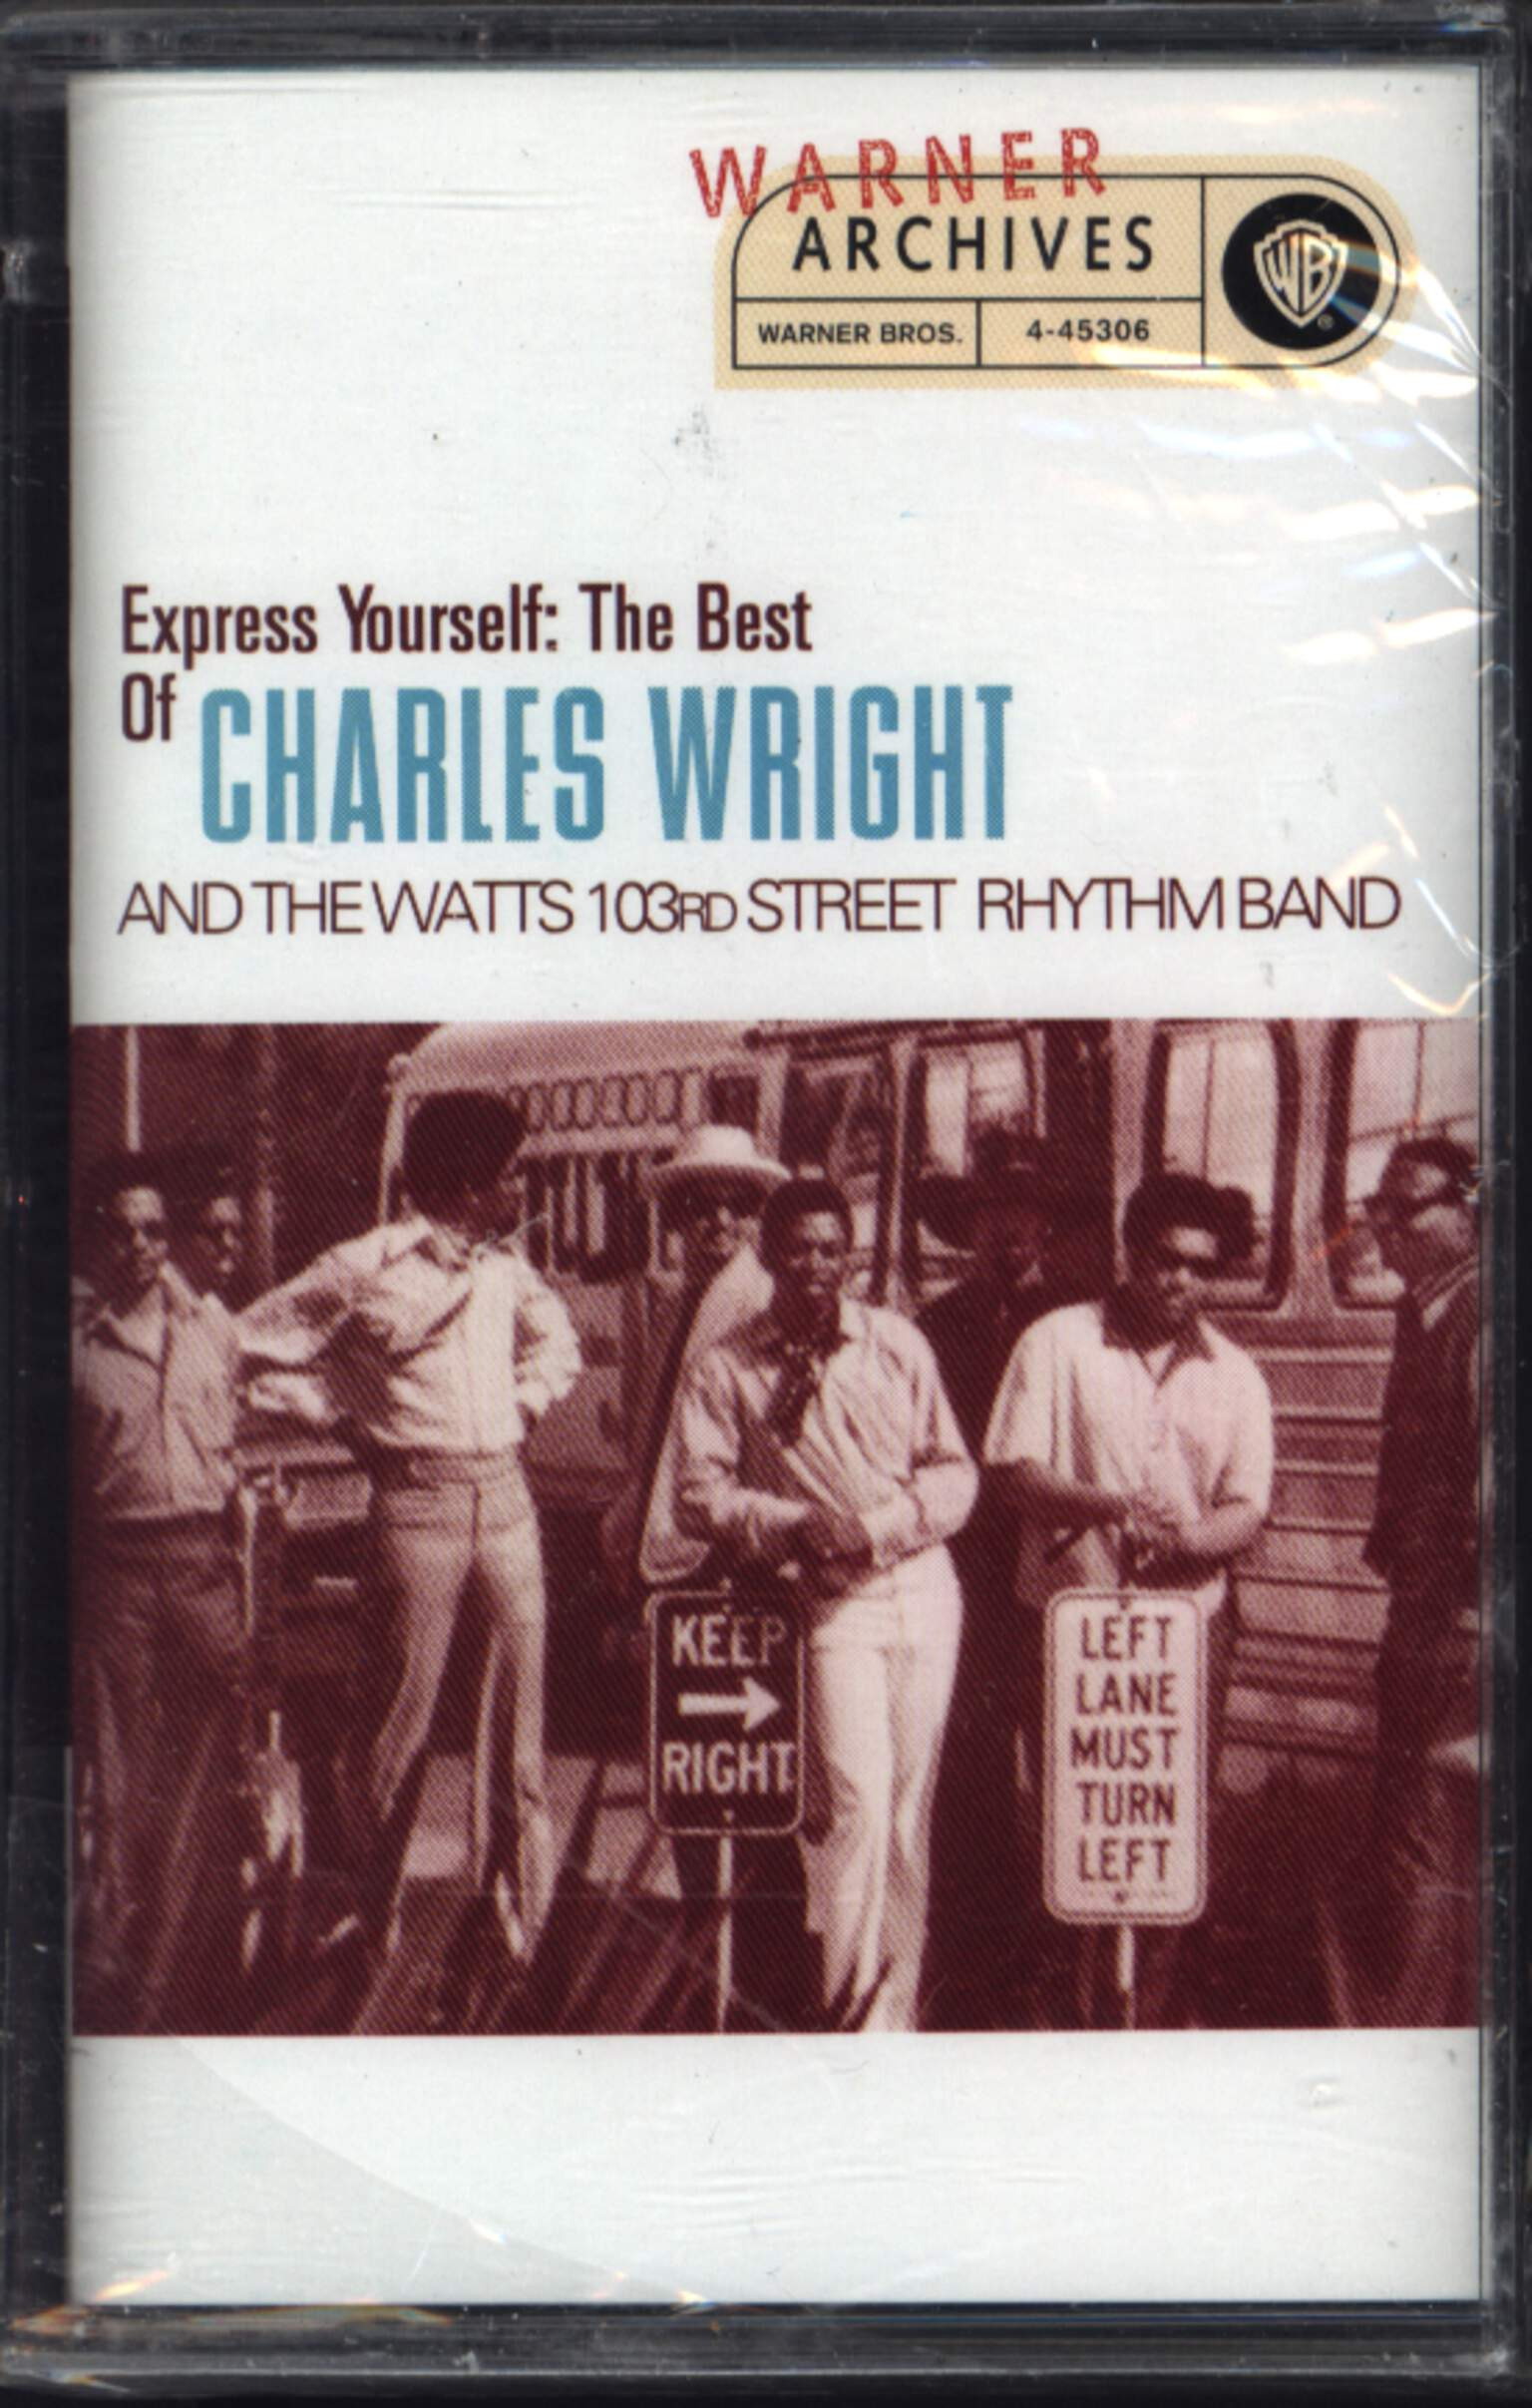 Charles Wright & The Watts 103rd St Rhythm Band: Express Yourself: The Best Of Charles Wright & The Watts 103rd Street Rhythm Band, Compact Cassette